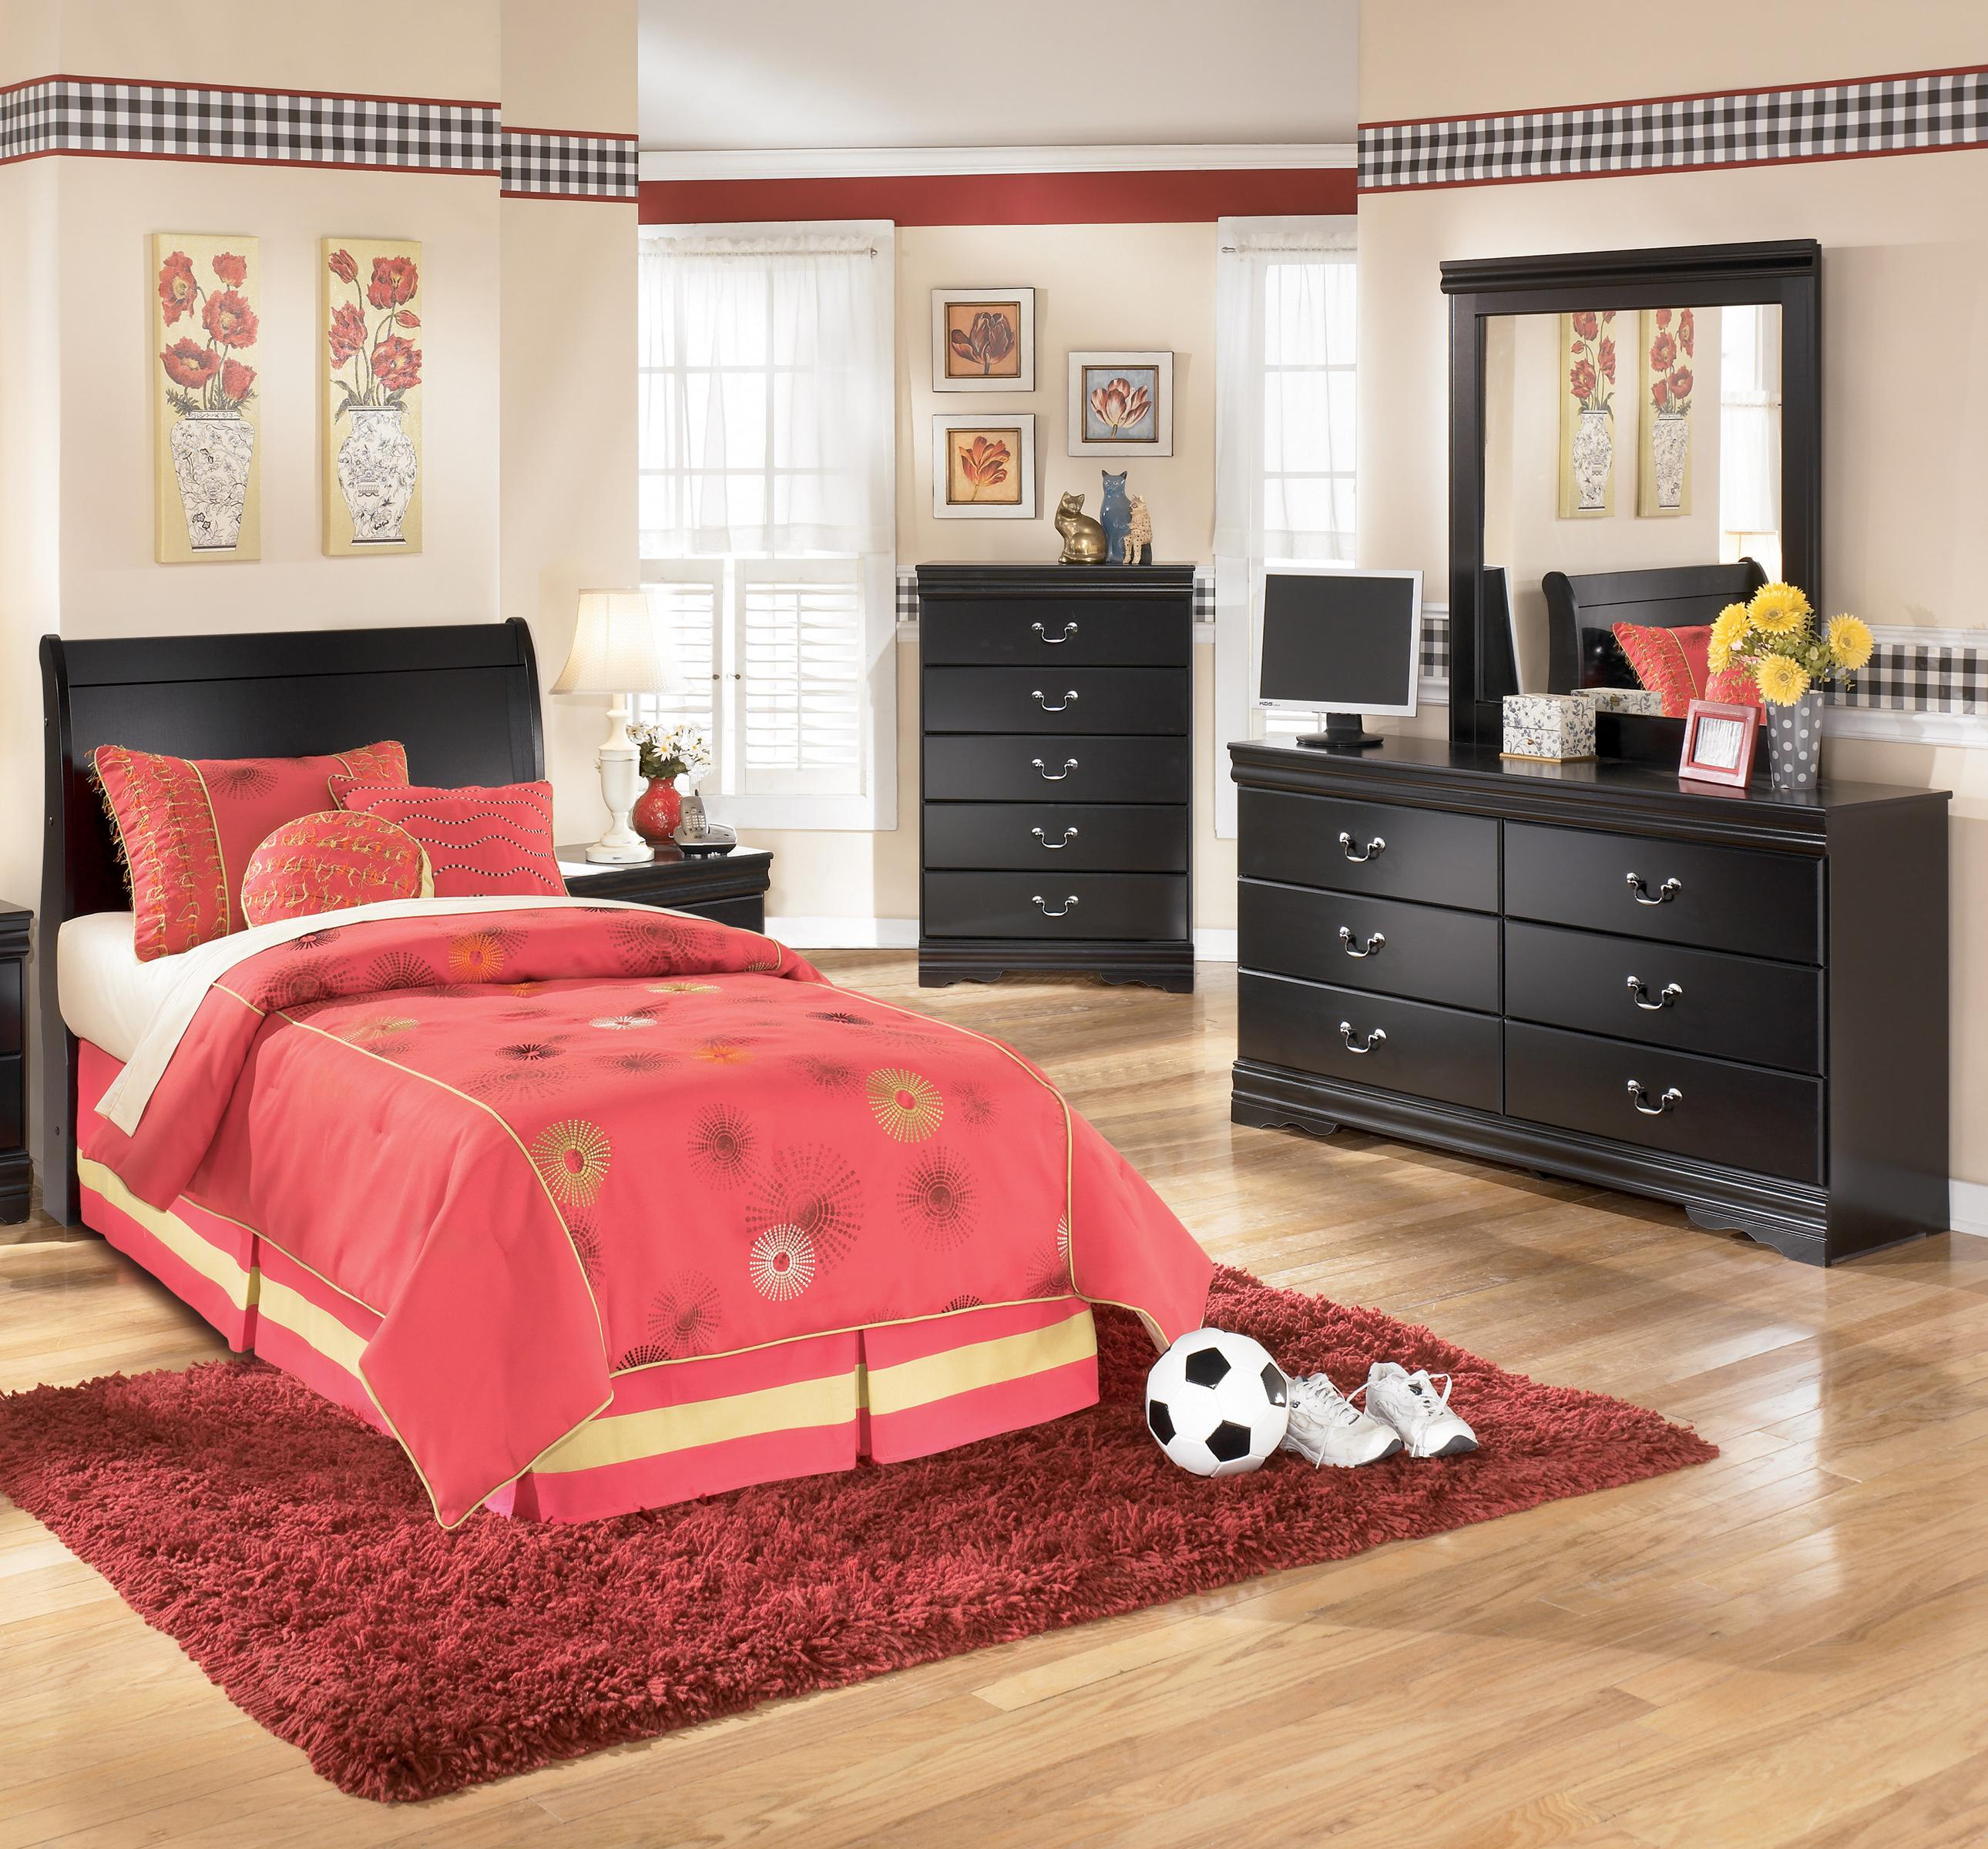 Signature Design by Ashley Huey Vineyard 3 Piece Twin Bedroom Group - Item Number: B128 T HB 3 Piece